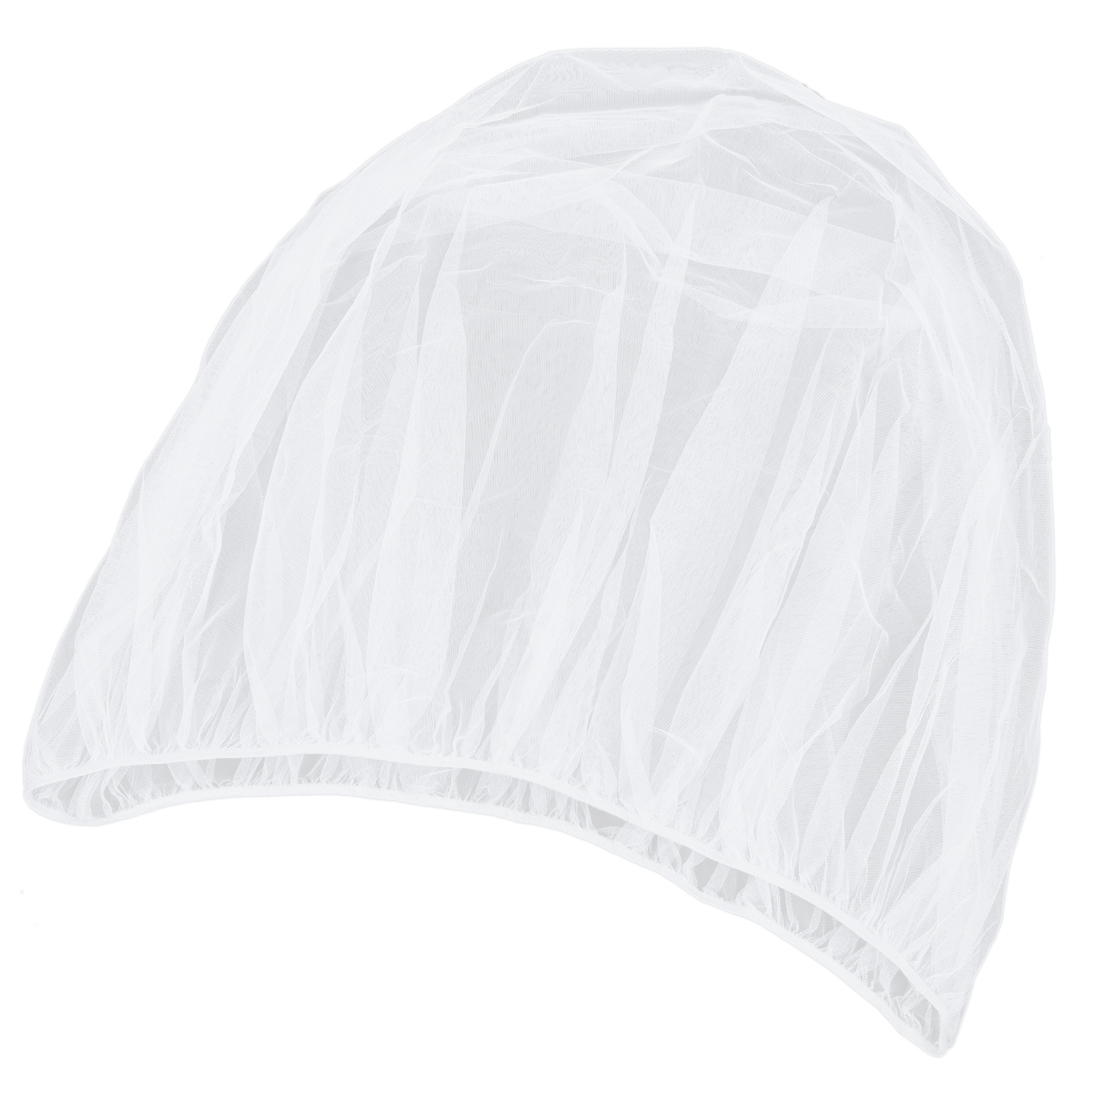 Wholesale!Infant Baby Pram Mosquito Net Buggy Pushchair Stroller Insect Cover Protector White